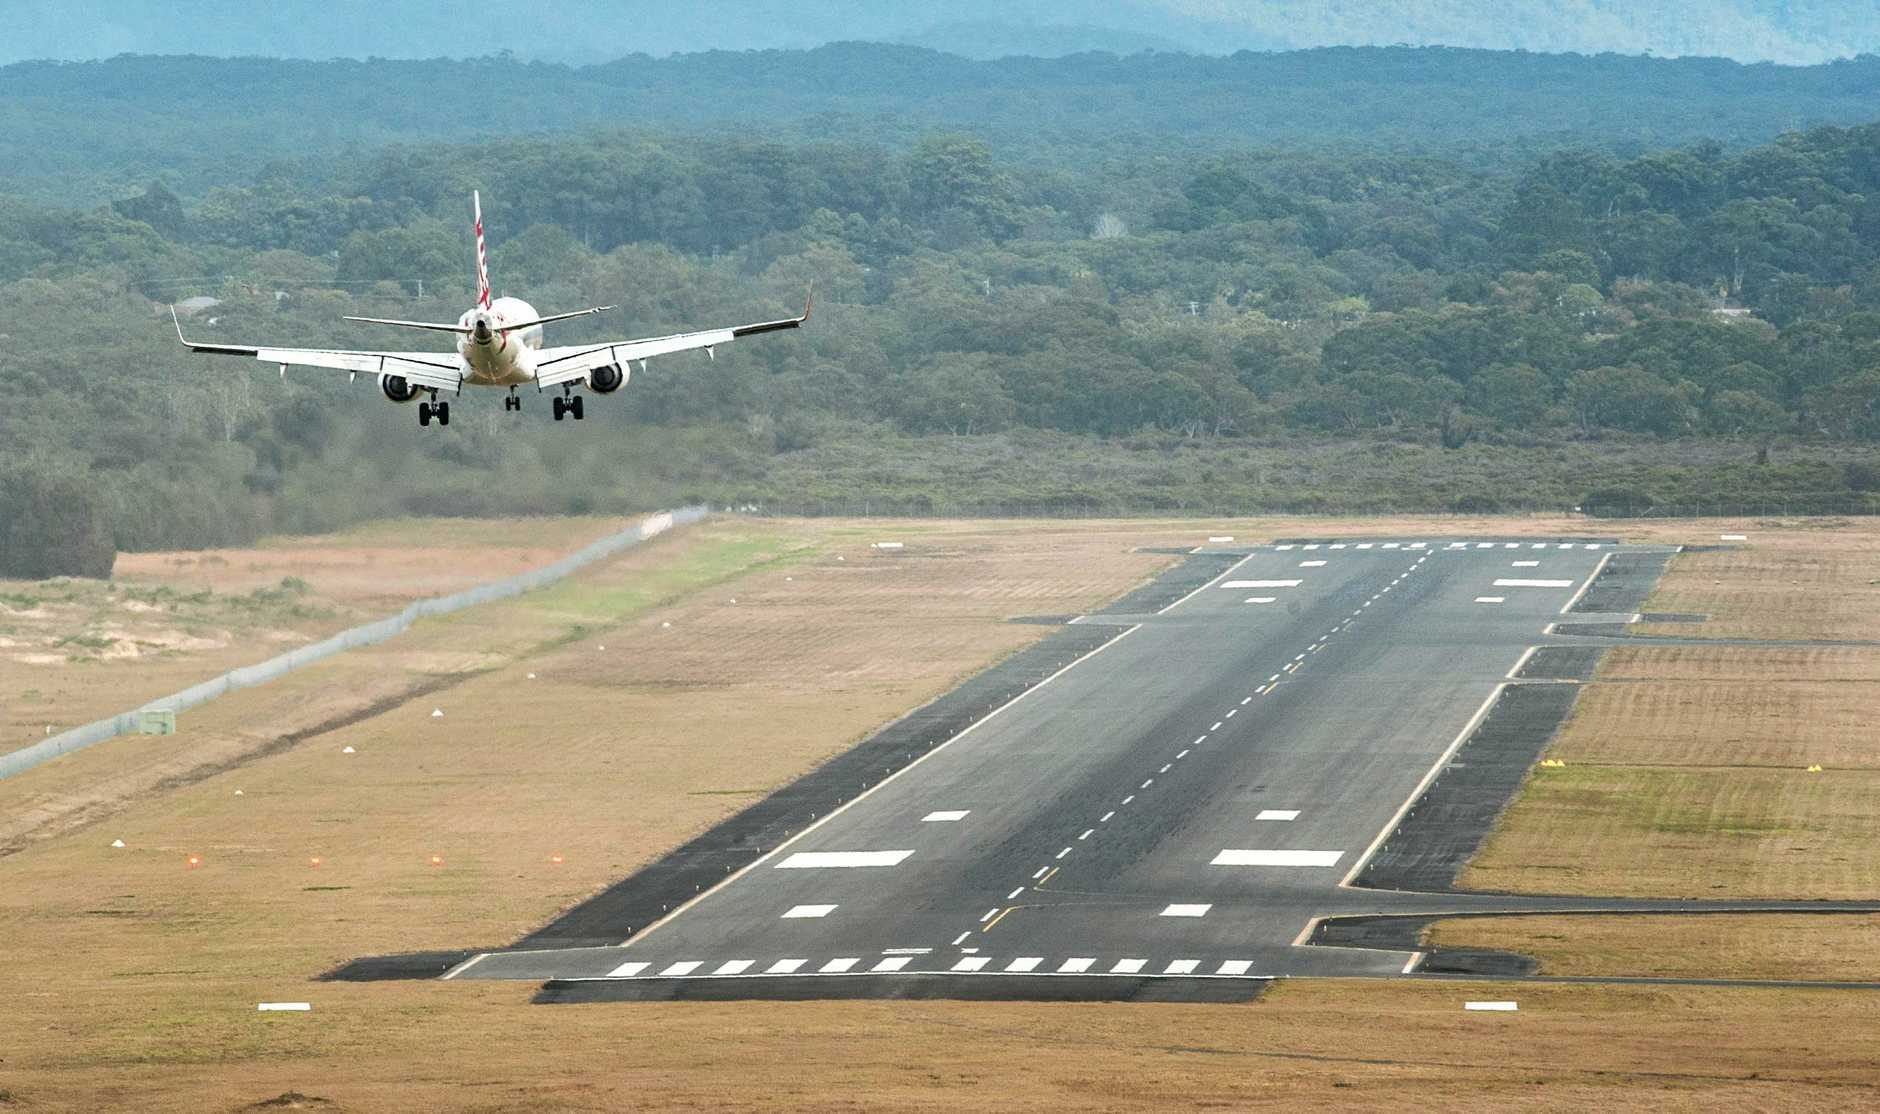 The new technology will also see aircraft travel at lower altitudes over Coffs Harbour - but the council are assuring locals not be concerned.